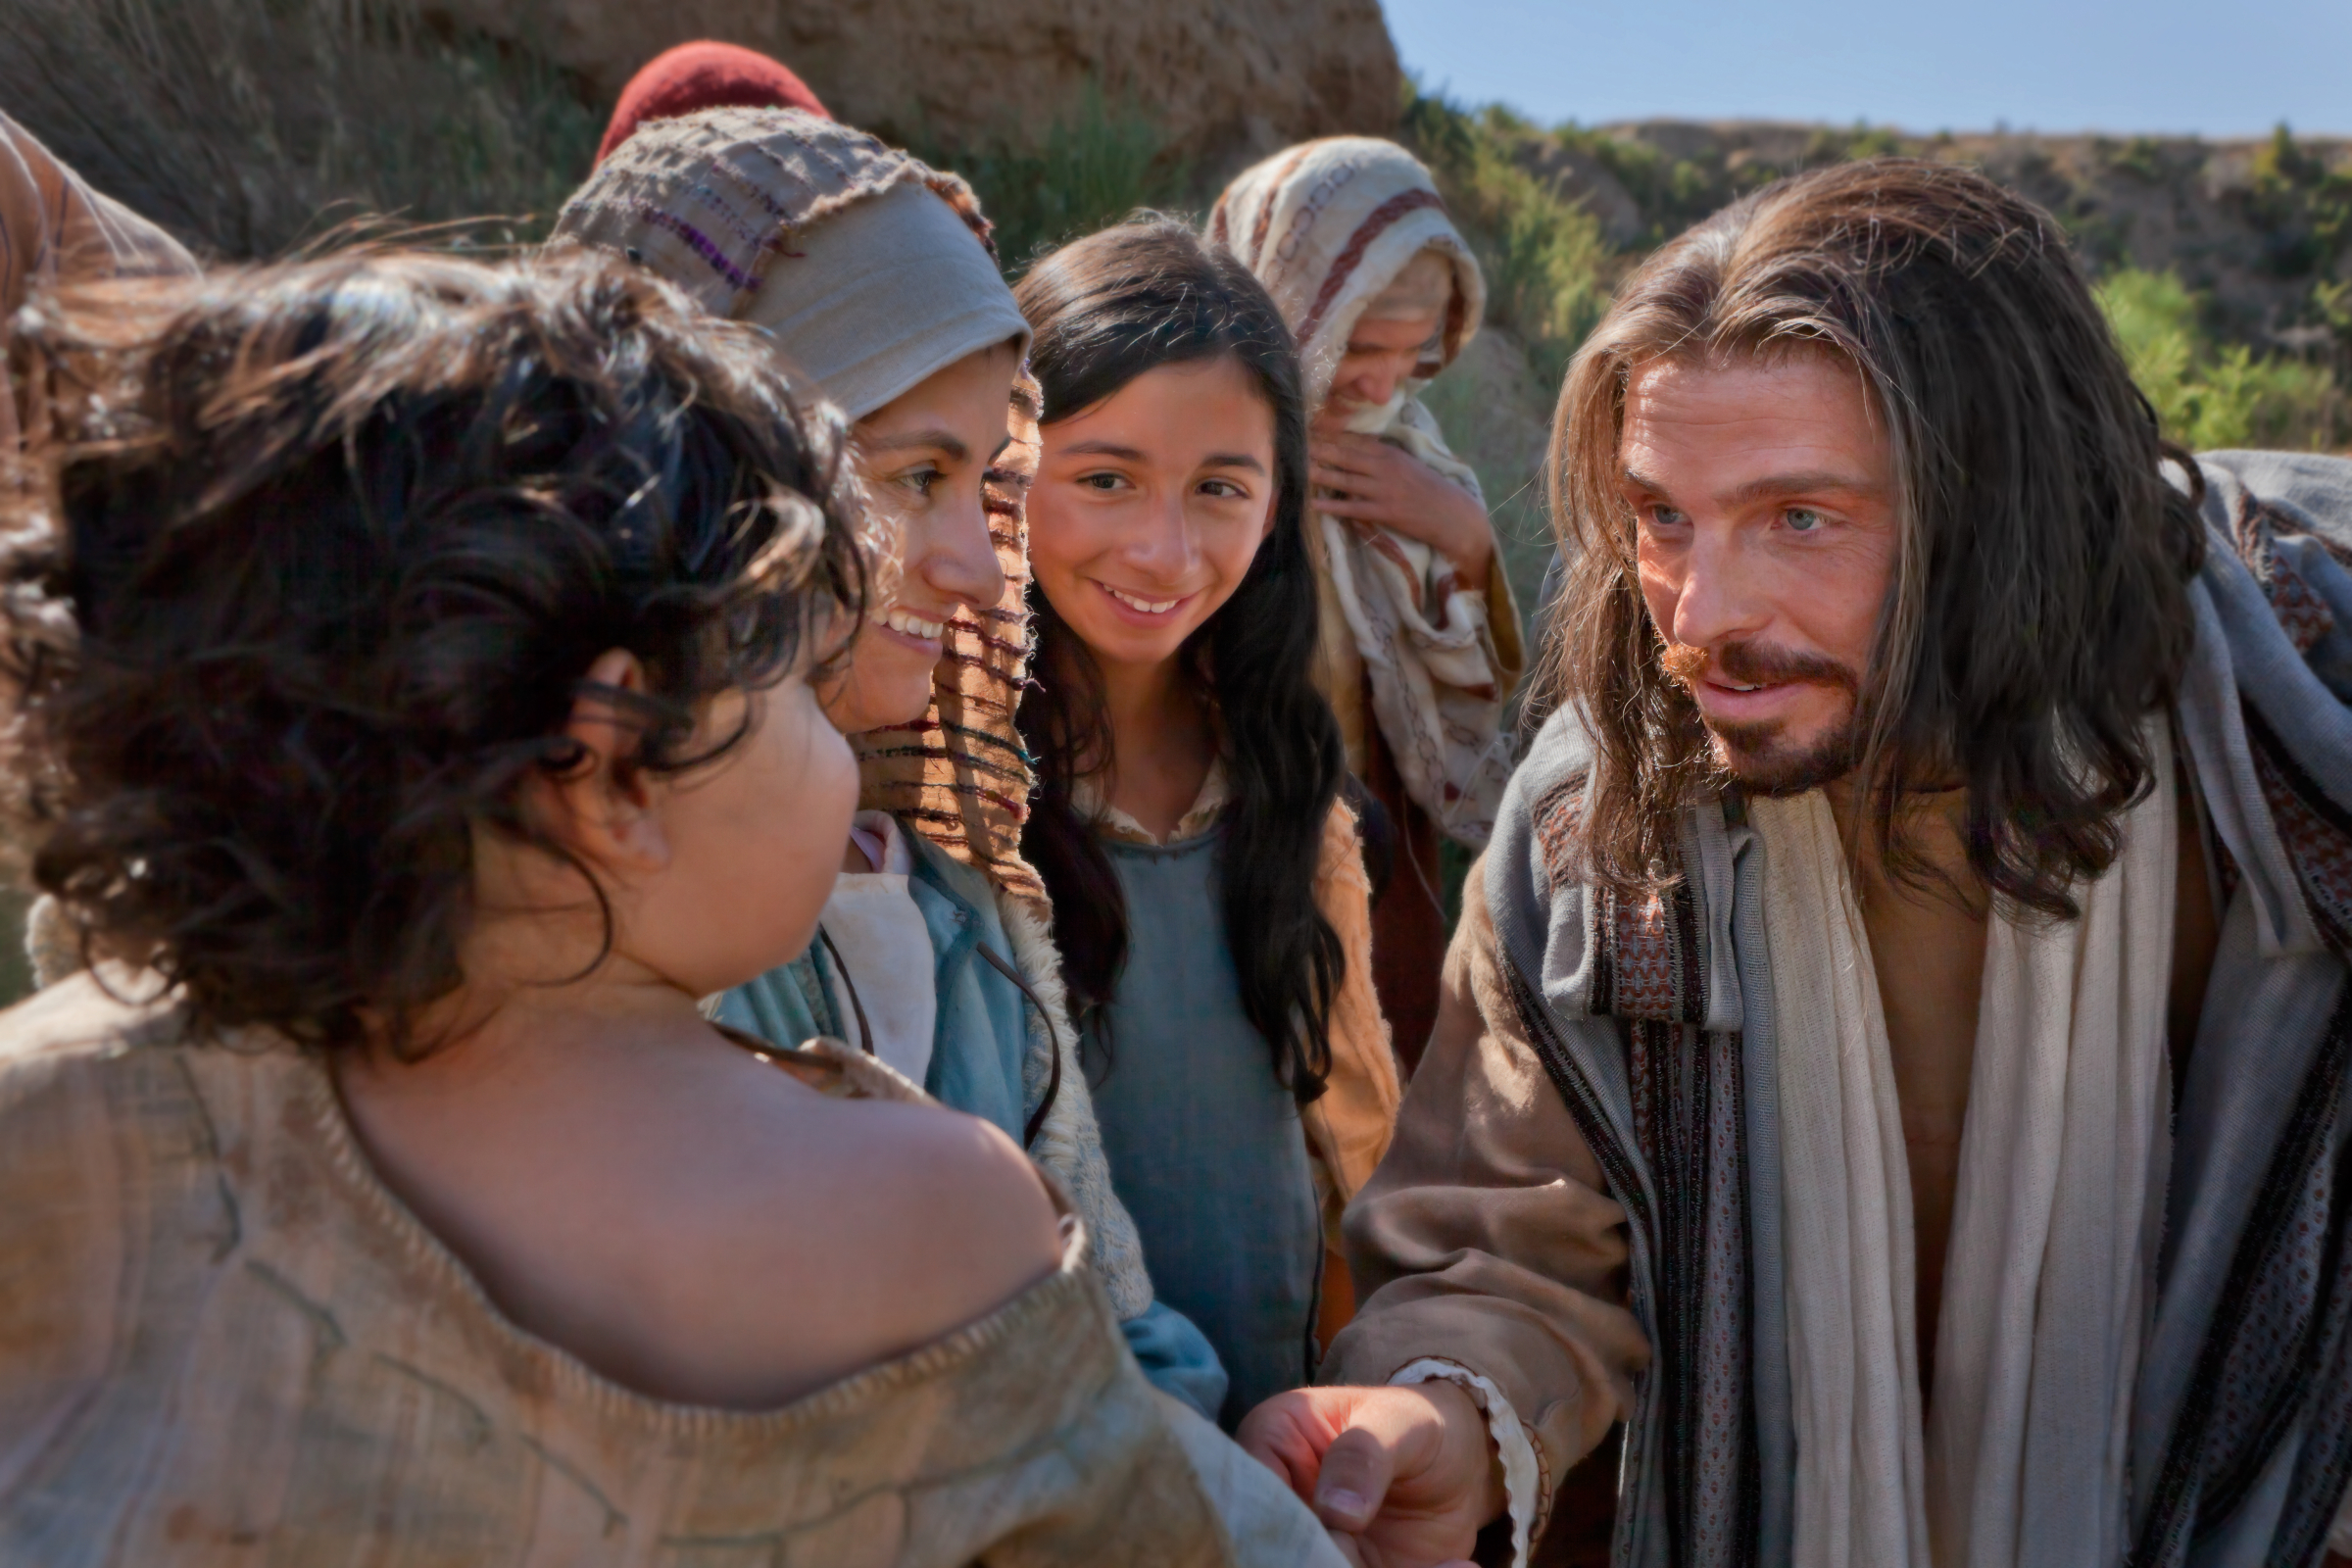 Christ talks with a child - Child jesus images download ...